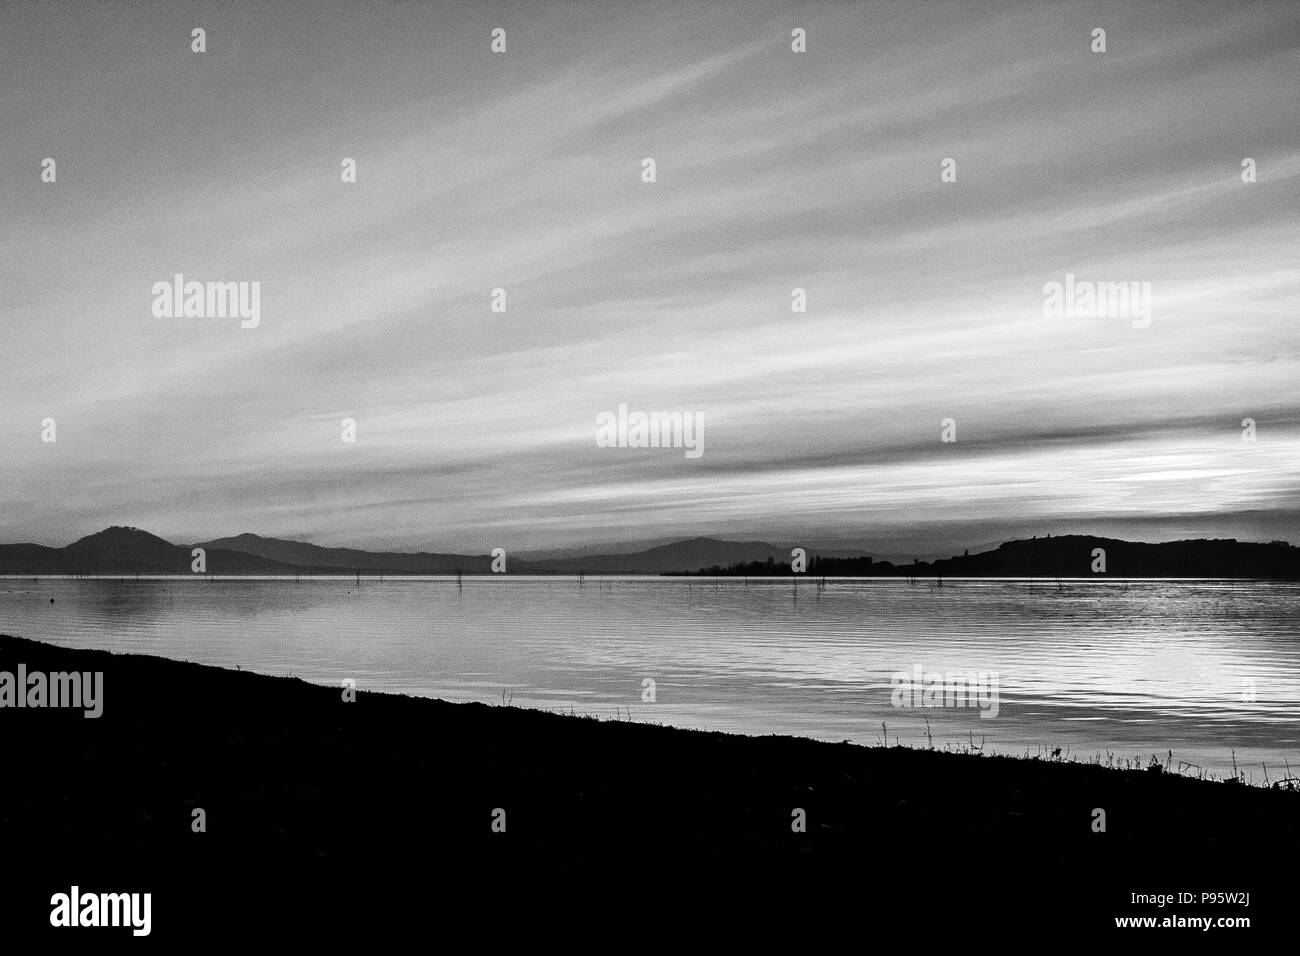 A shoot of a sunset over a lake, with sun coming down behind and island and many diagonal lines created by clouds and water waves - Stock Image